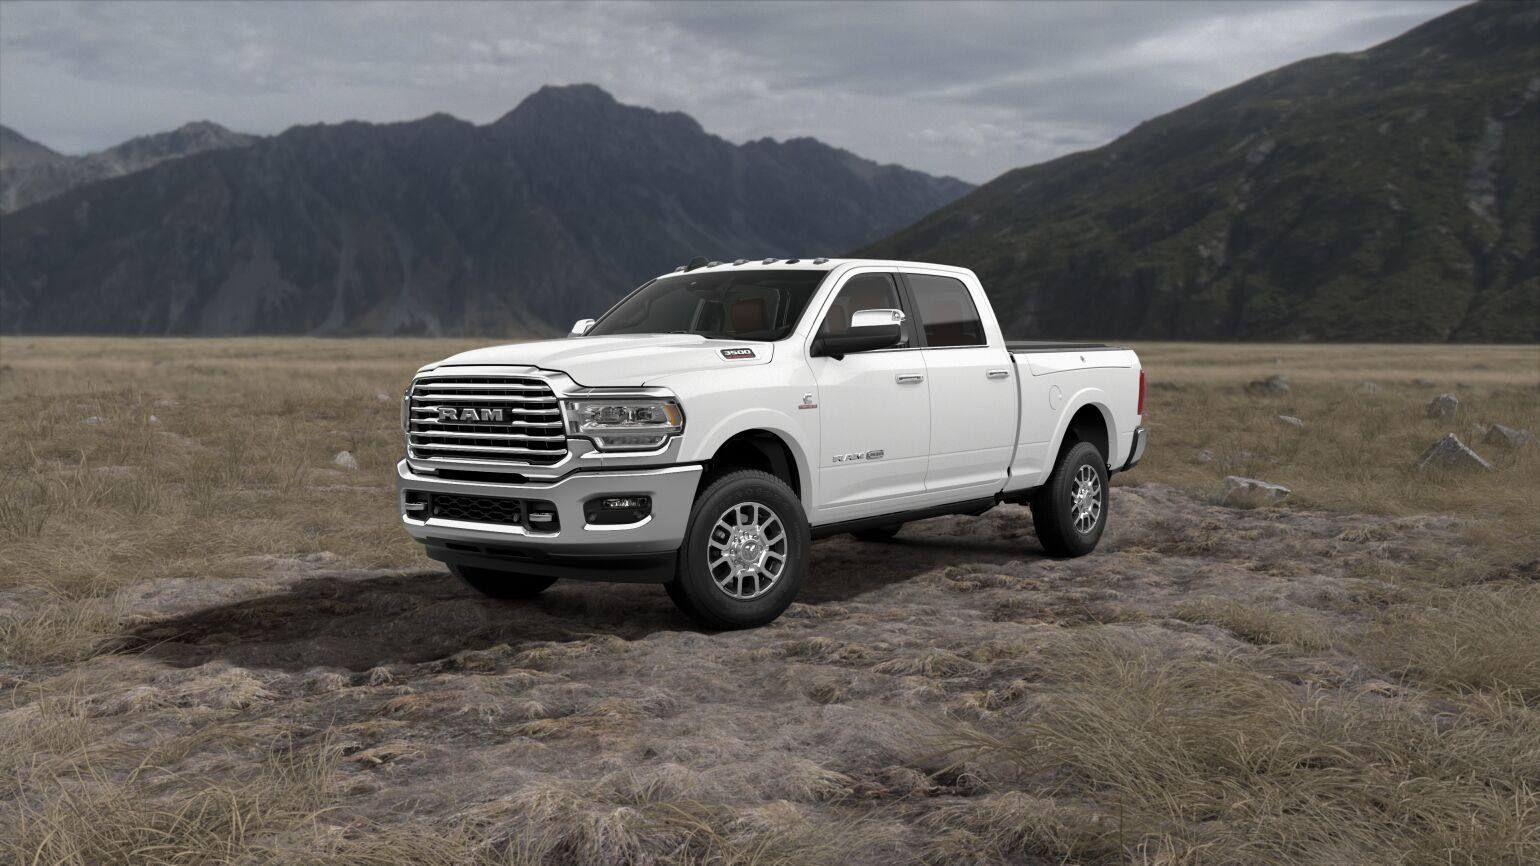 Ram Build And Price >> Build Price A 2019 Ram 3500 Today Ram Camper In 2019